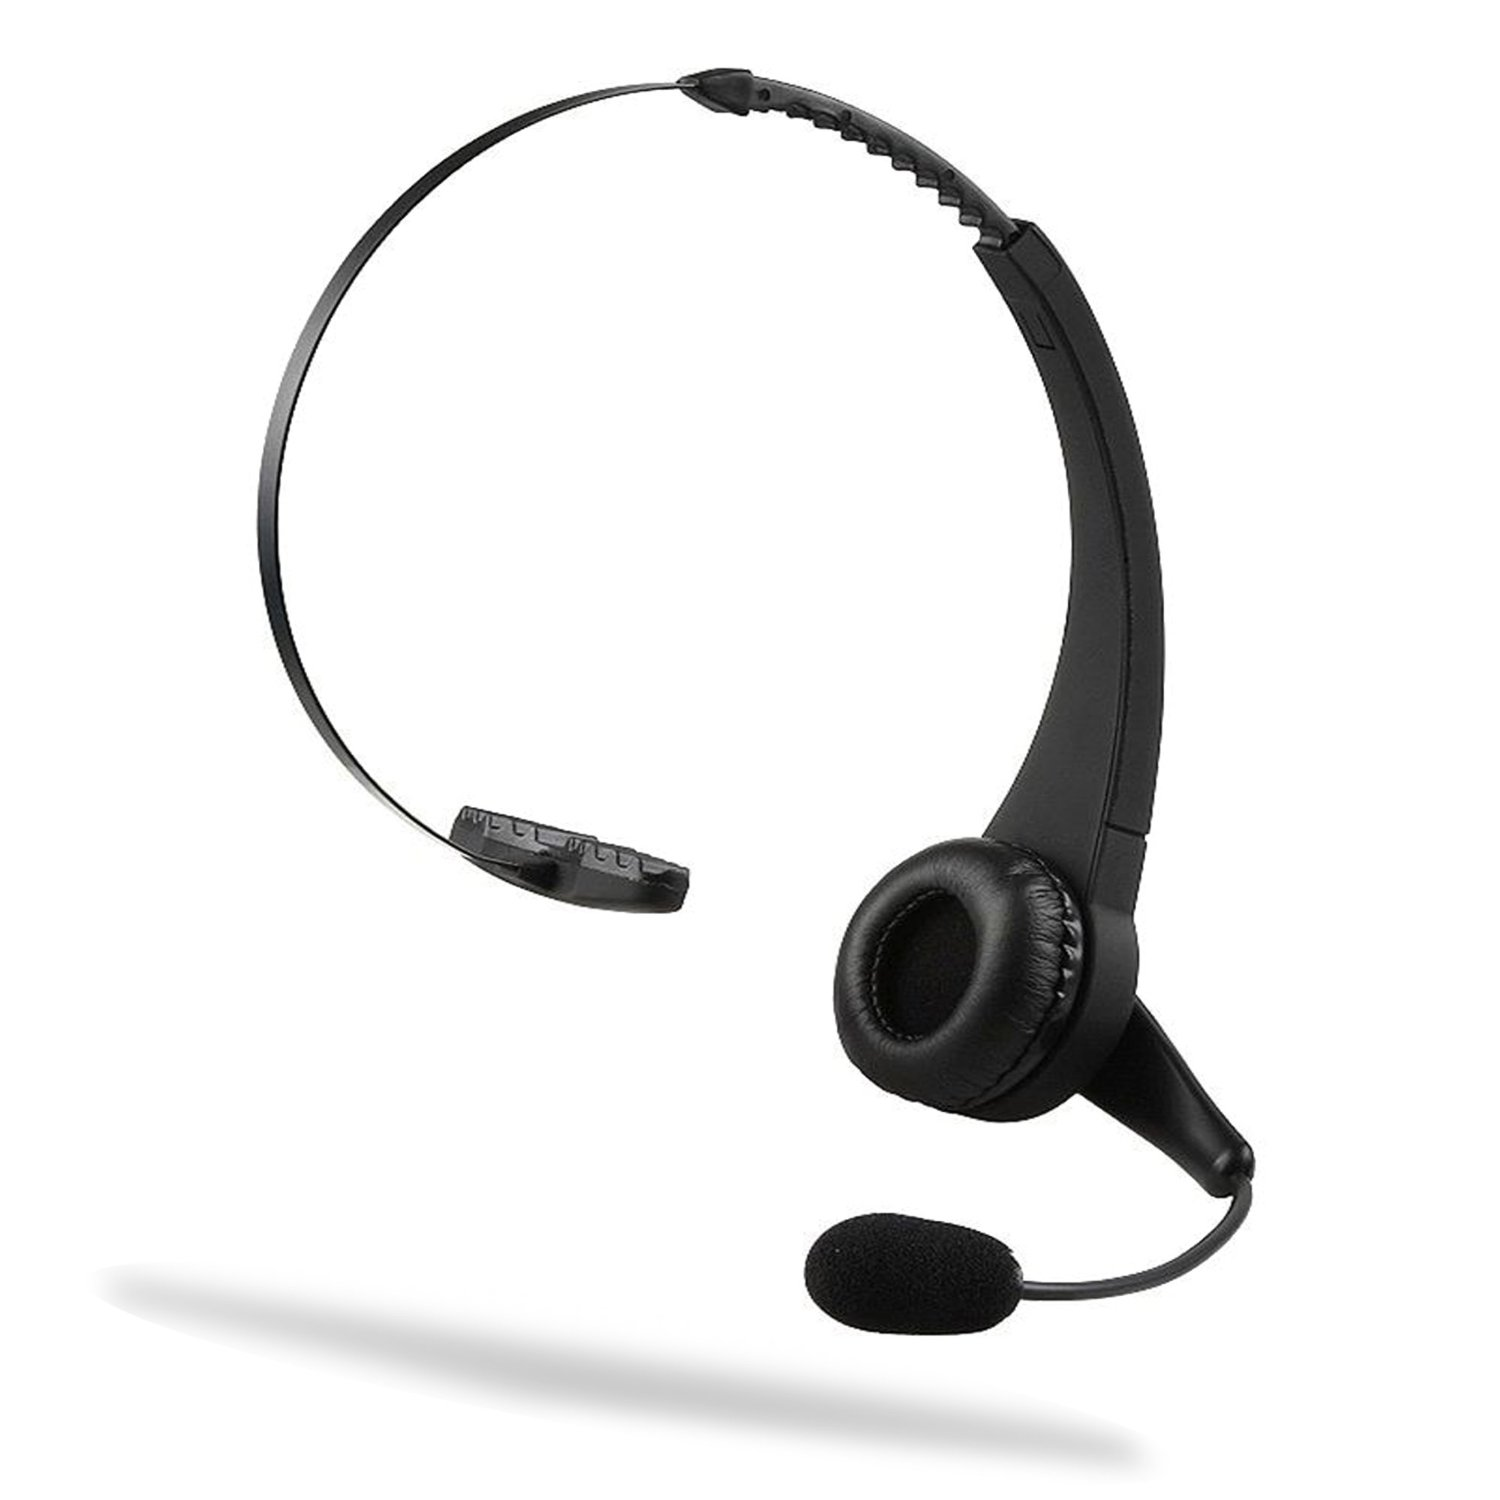 Cheap Test Bluetooth Headset Ps3 Find Test Bluetooth Headset Ps3 Deals On Line At Alibaba Com